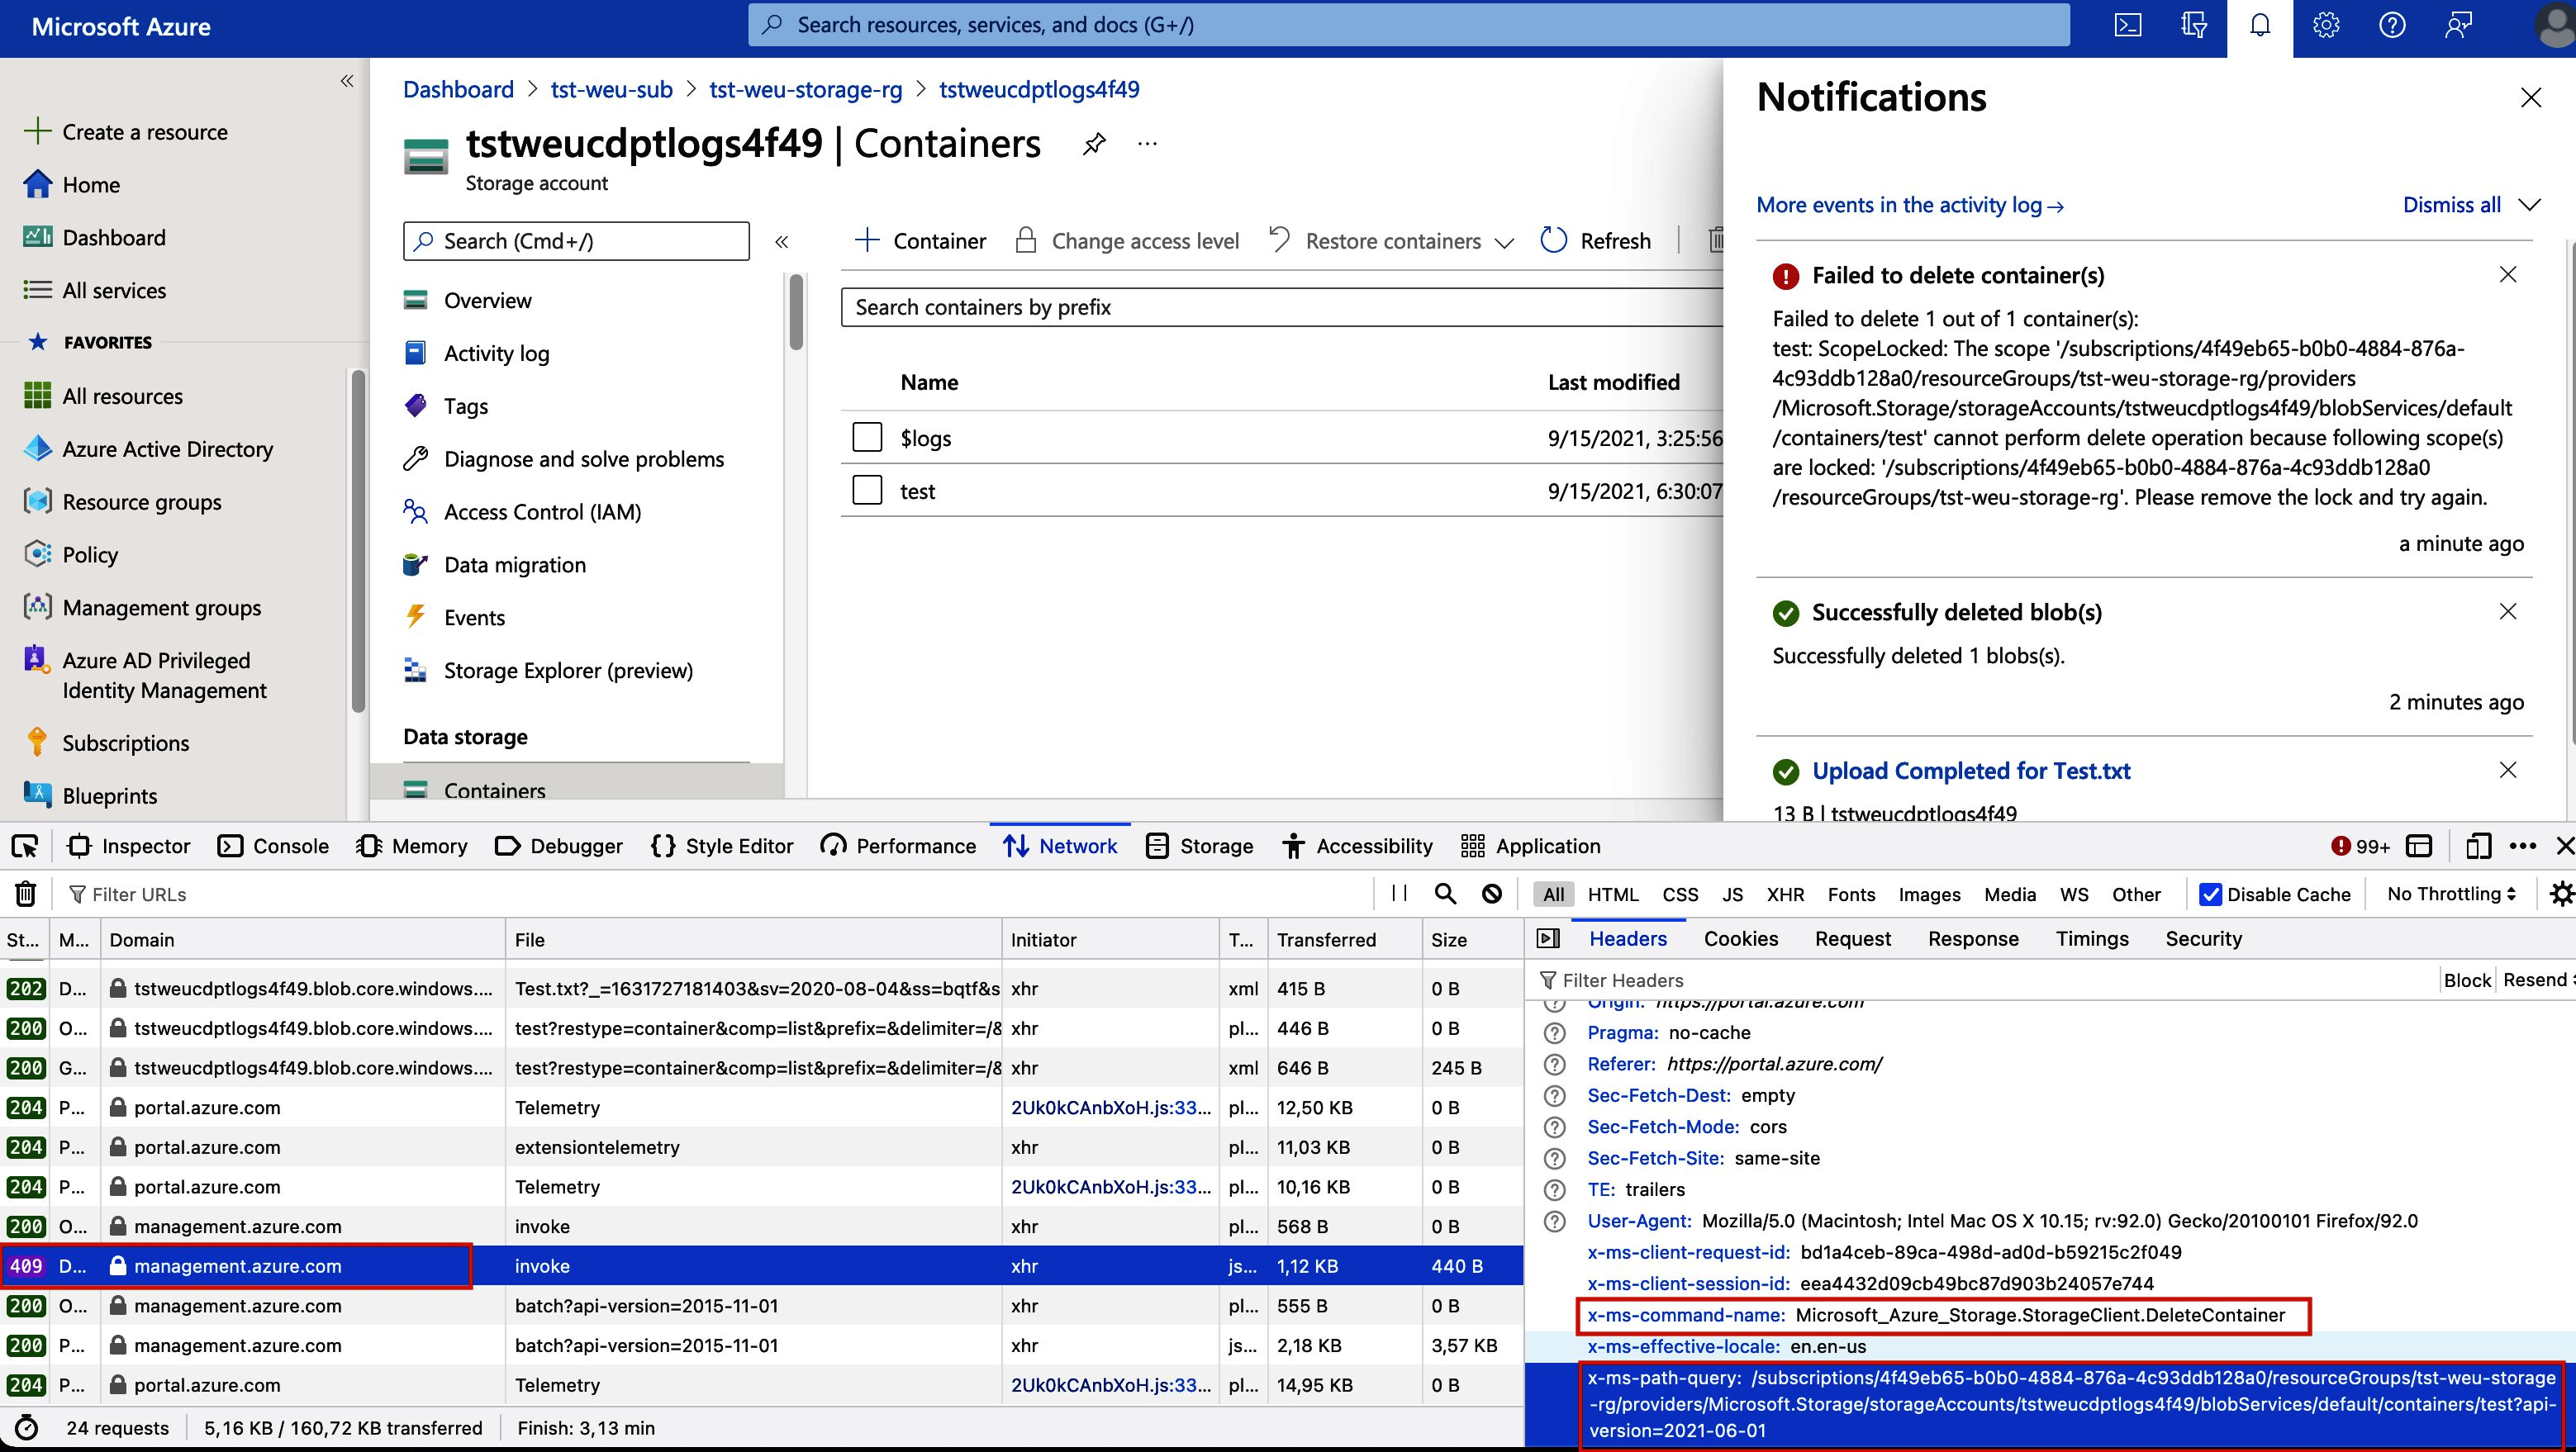 Image of the browser's development tools window, the networking tab is opened. There are is a delete request being sent to the control plane URL 'management.azure.com'. The request's header contains a key 'x-ms-command-name' with value 'Microsoft_Azure_Storage.StorageClient.DeleteContainer'. The request's header contains another key 'x-ms-path-query' with the full URI to the BLOB container as a value.